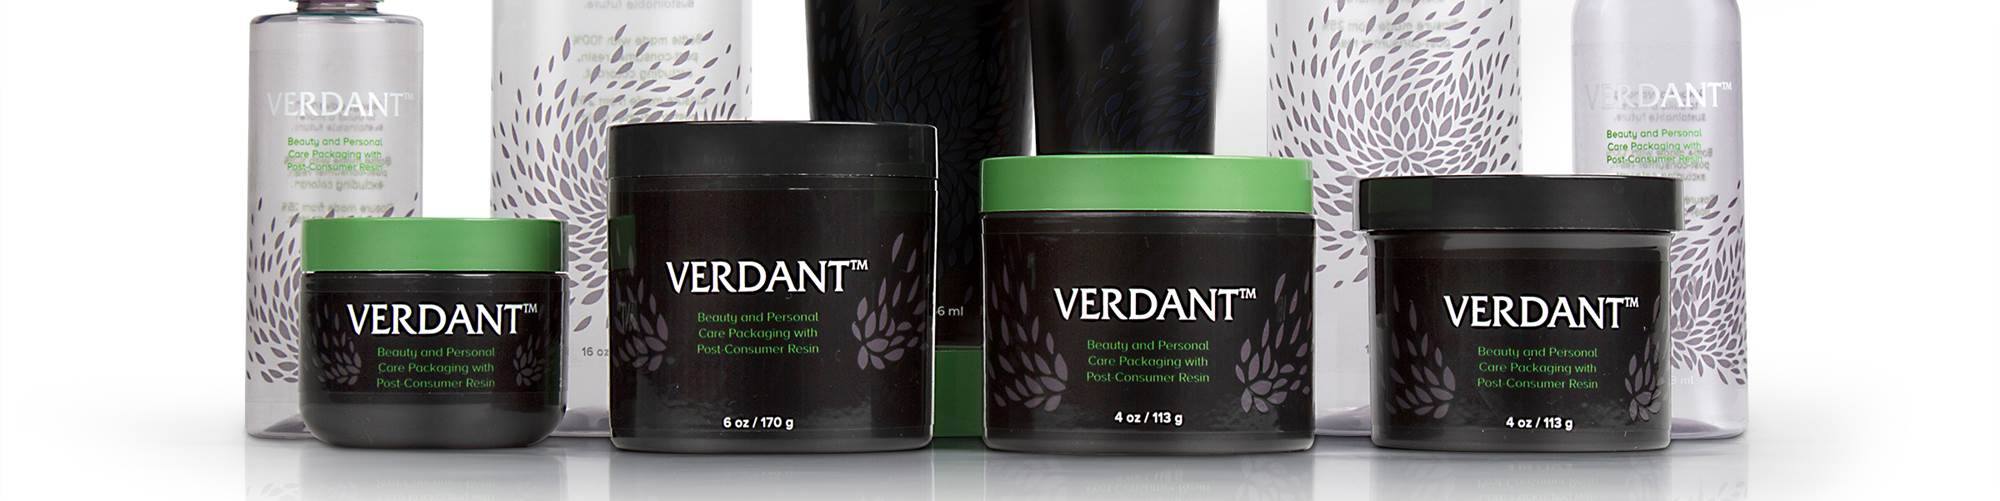 verdant recycled plastic packaging